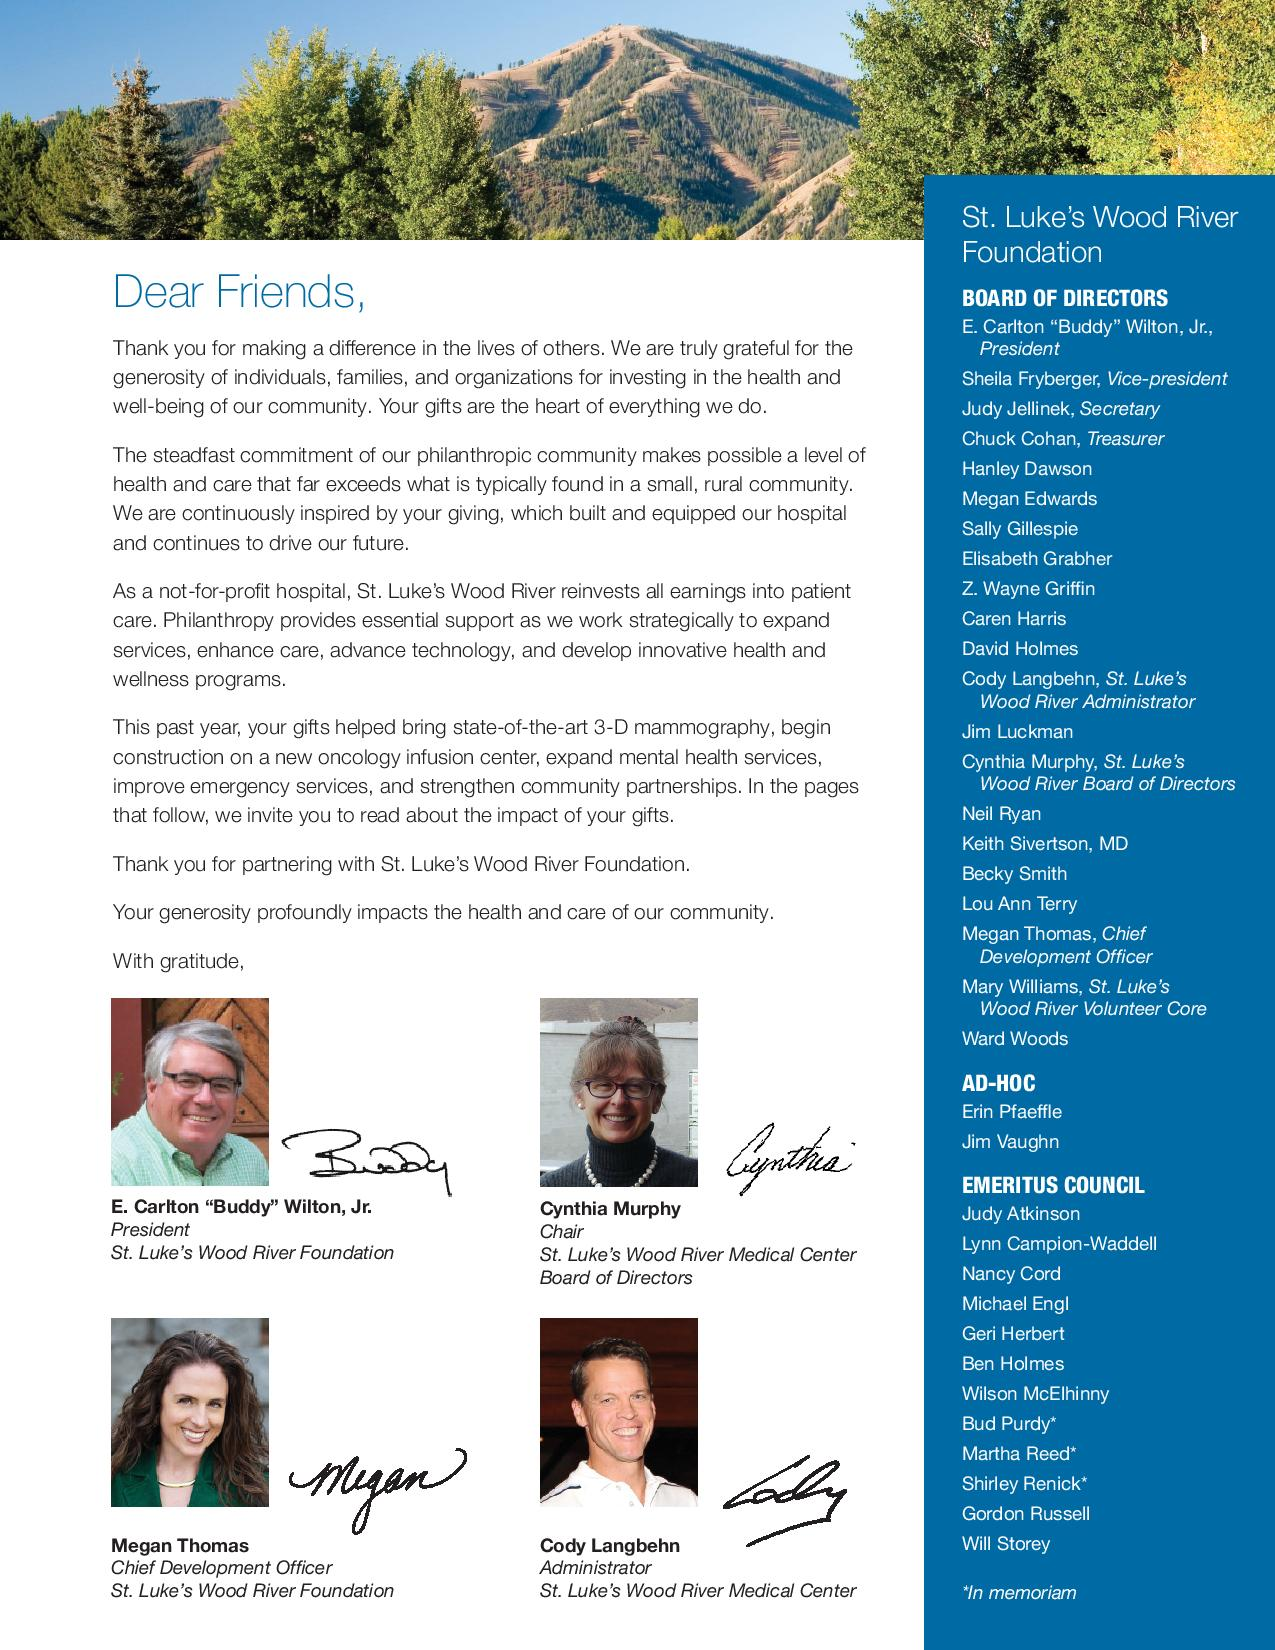 WRF-195 Spring Newsletter_15 FINAL_Page_2